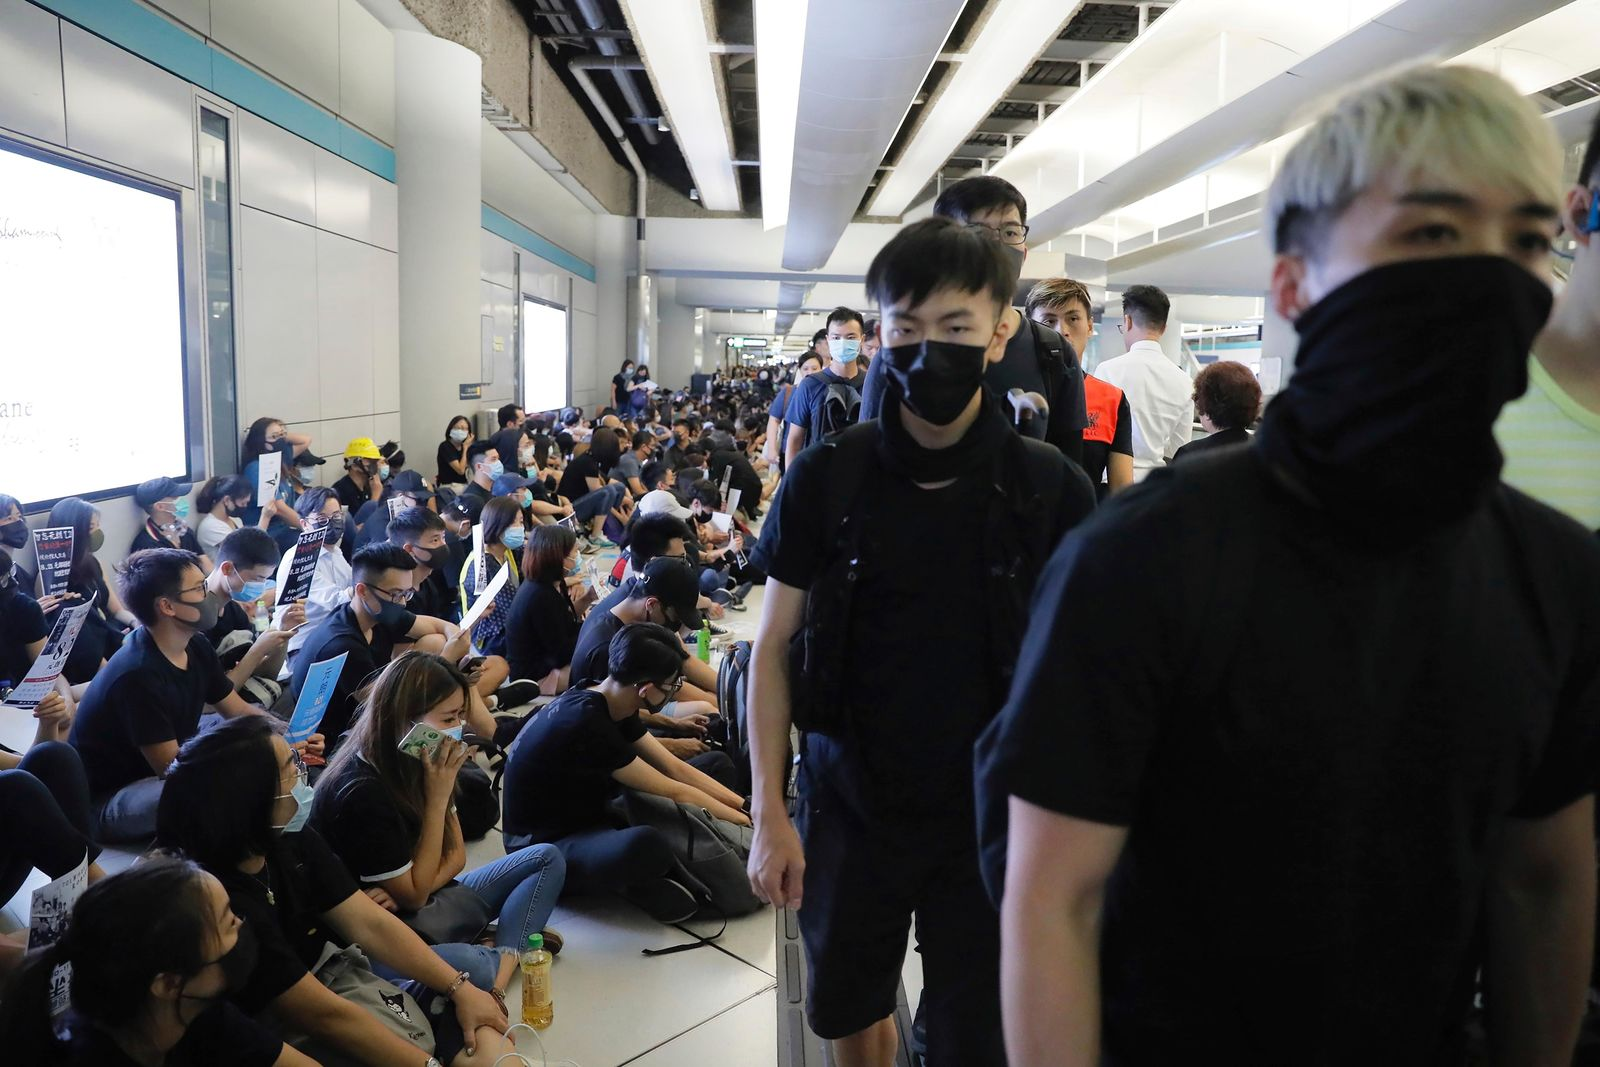 "Demonstrators sit during a protest at the Yuen Long MTR station, where demonstrators and others were violently attacked by men in white T-shirts following an earlier protest in July, in Hong Kong, Wednesday, Aug. 21, 2019. Japan's top diplomat on Tuesday told his Chinese counterpart that Japan is ""deeply concerned"" about the continuing protests in Hong Kong. (AP Photo/Kin Cheung)"